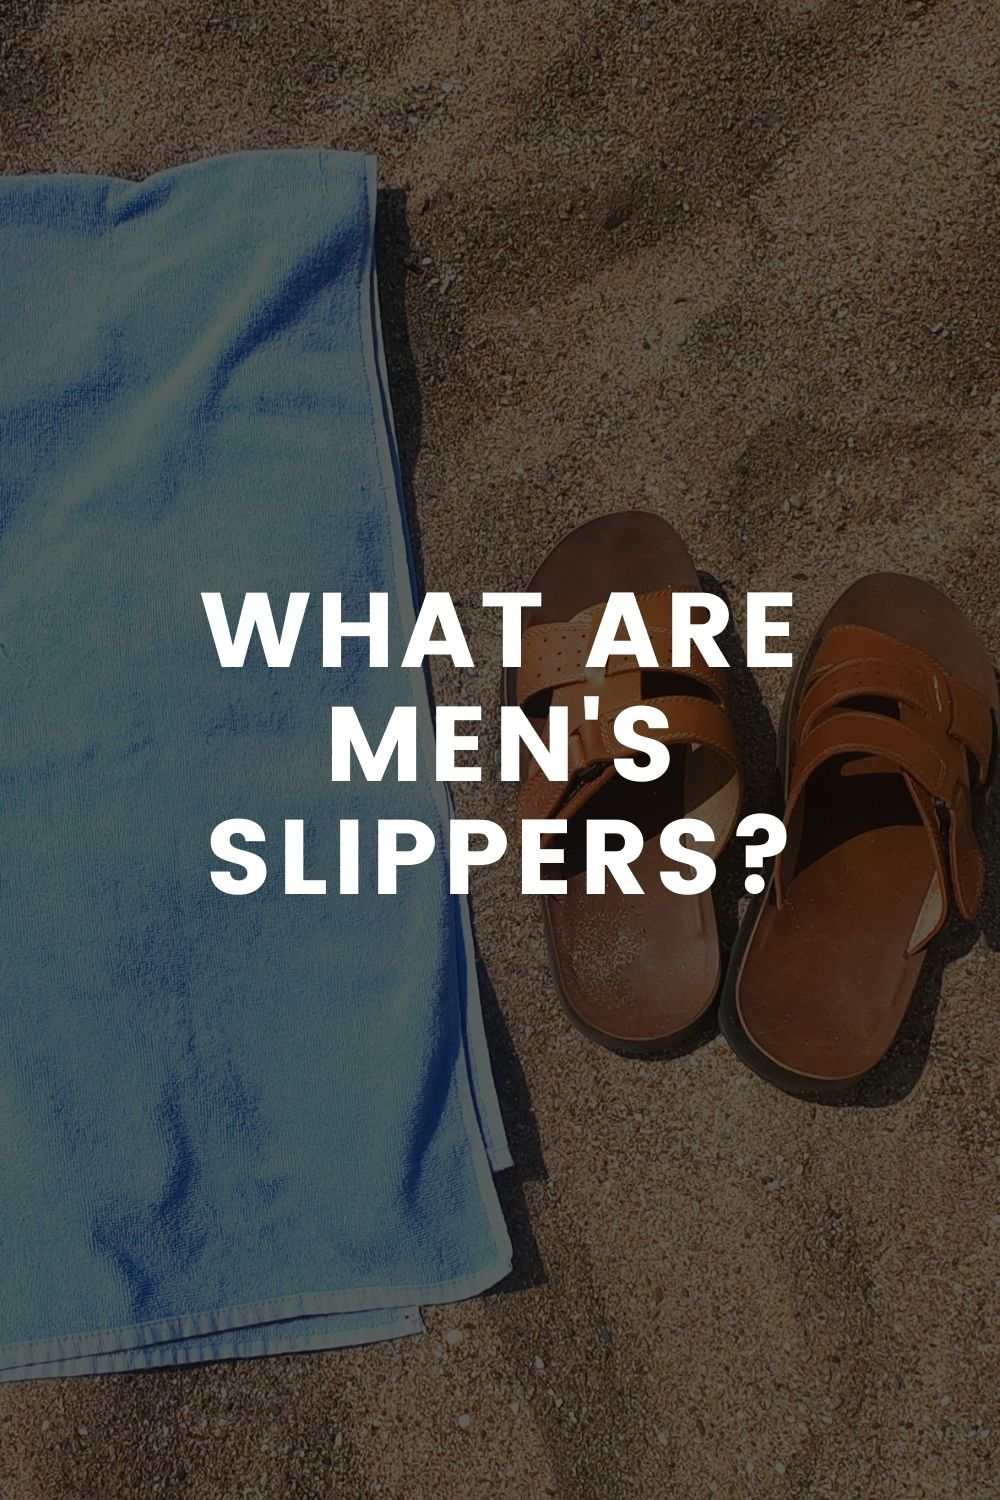 What are Men's Slippers?